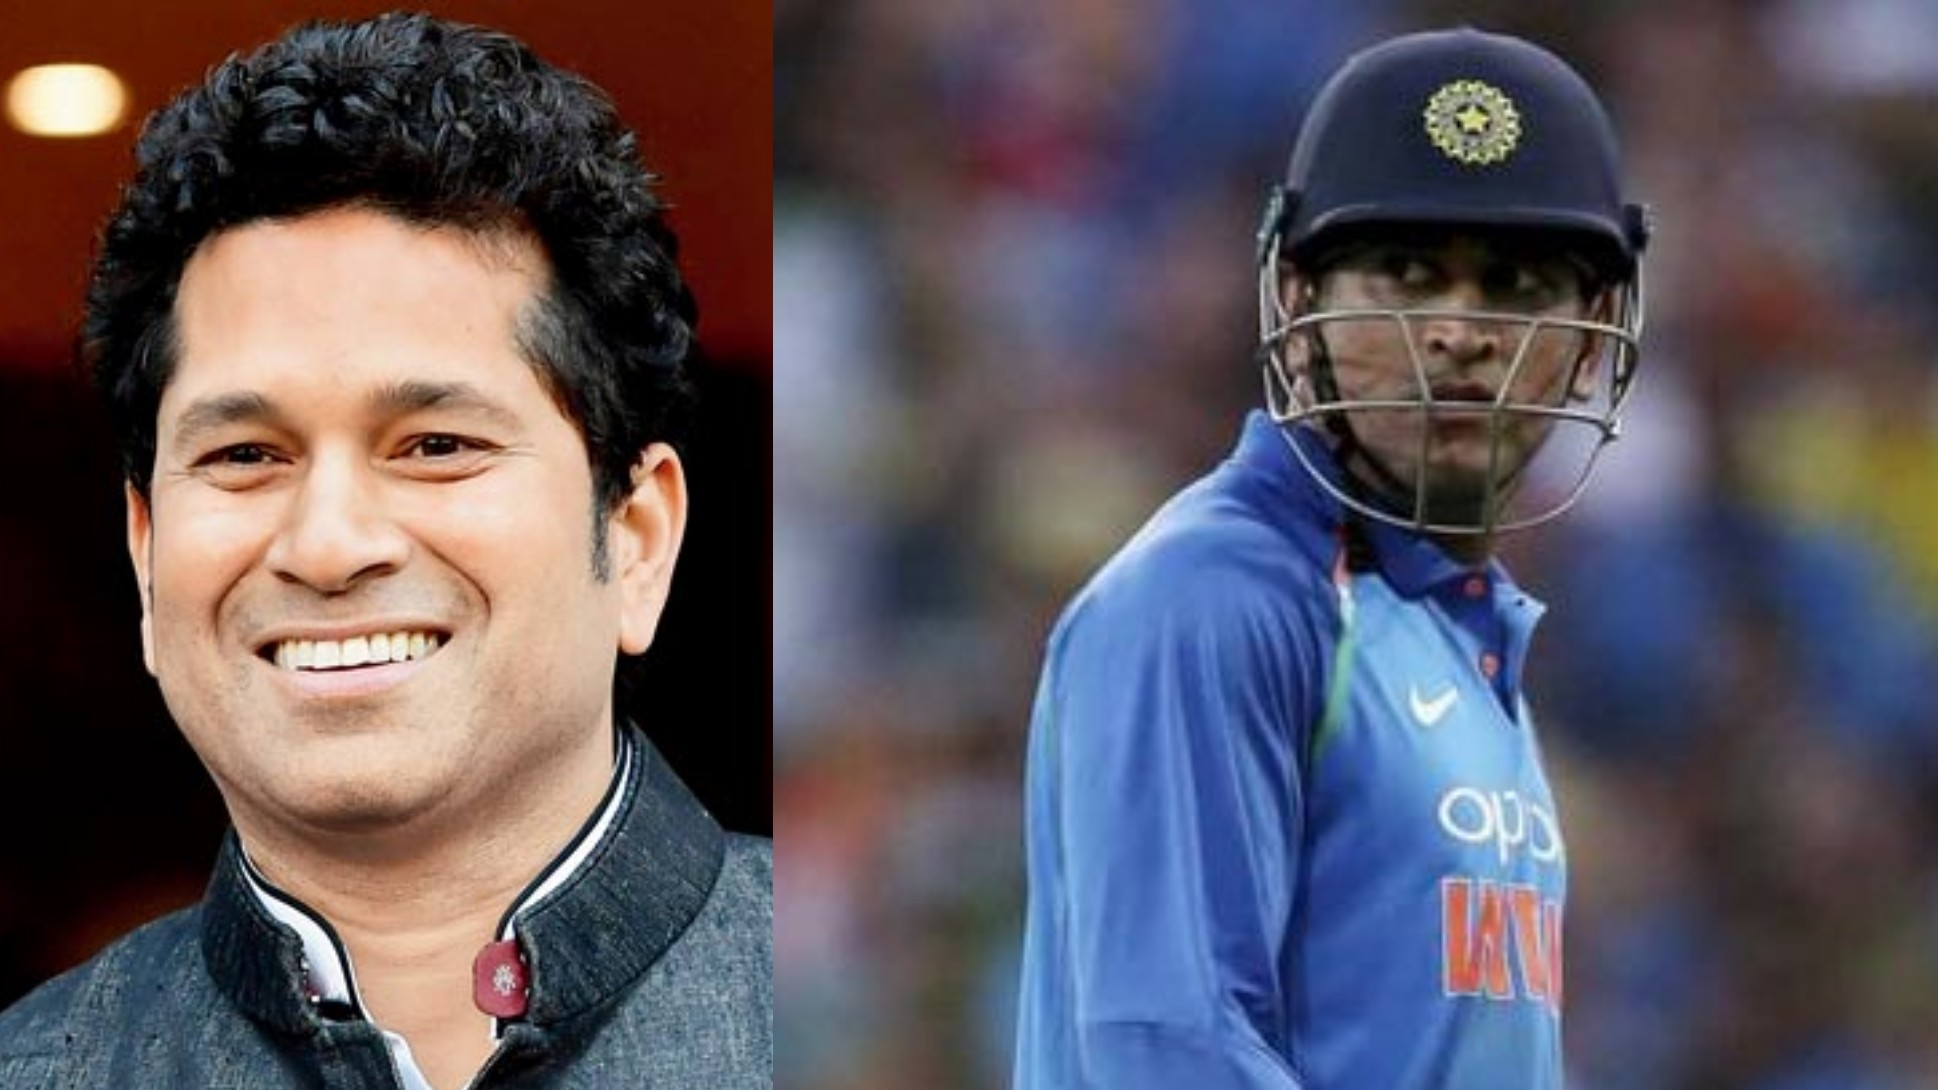 CWC 2019: Sachin Tendulkar reveals where MS Dhoni should bat for India in World Cup